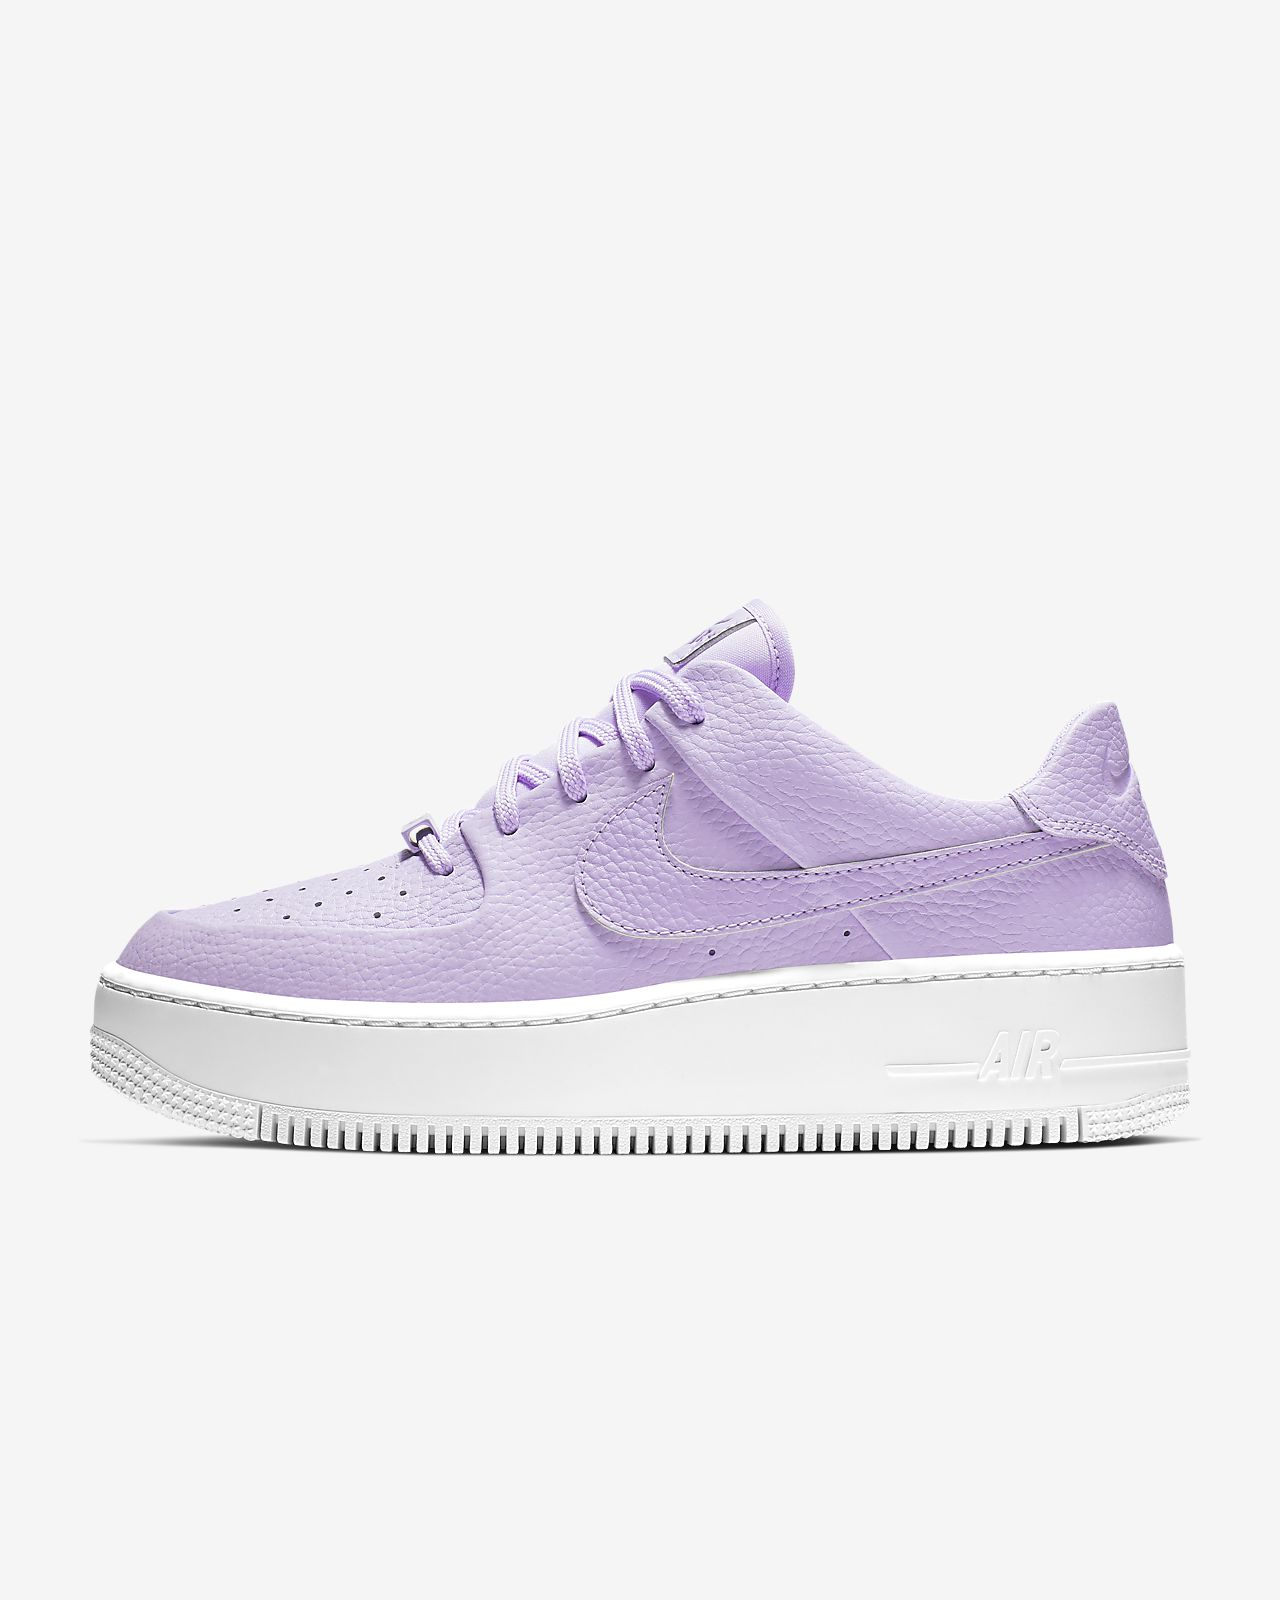 timeless design 7f10f a1b90 ... Skon Nike Air Force 1 Sage Low för kvinnor